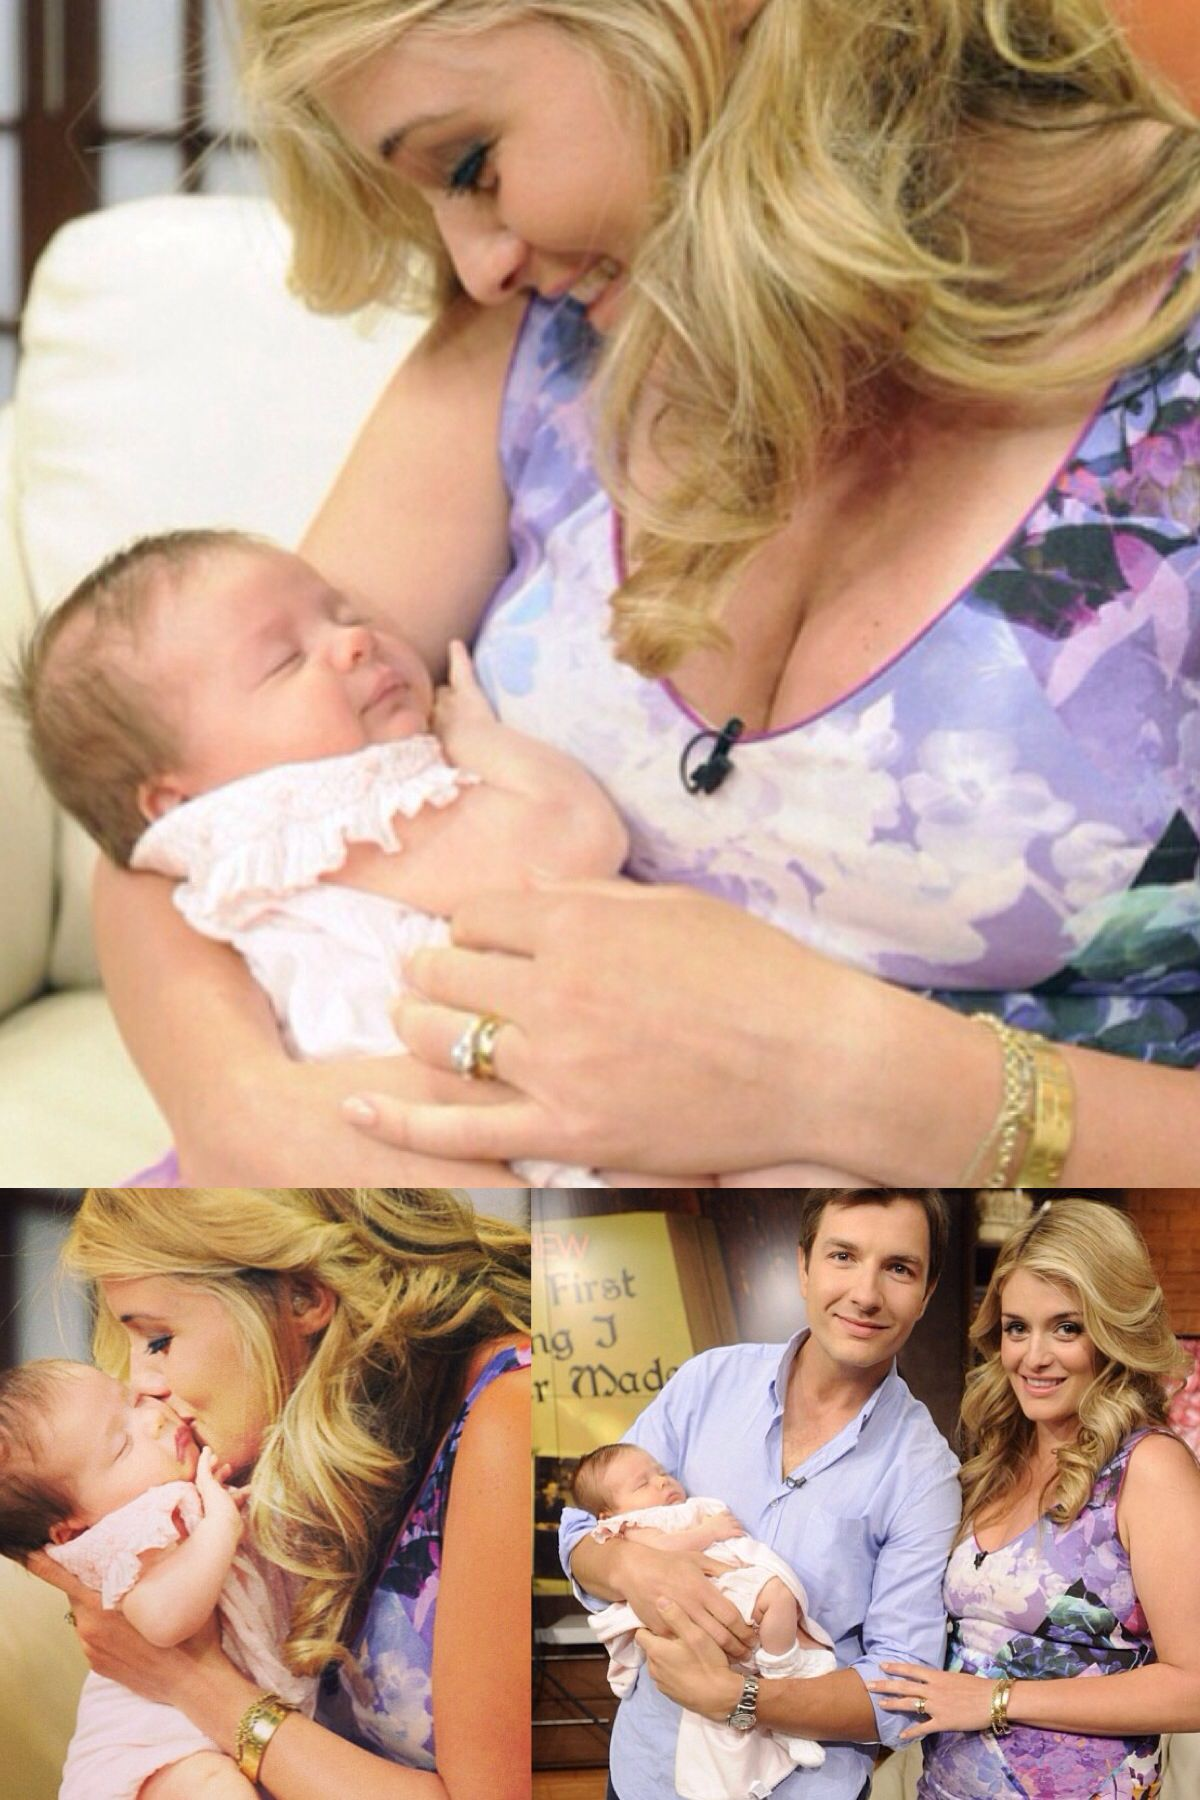 Daphne Oz From The Chew Holding Her Daughter Philomena And Her Husband Celebrity Babies Celebrity Families Daphne Oz